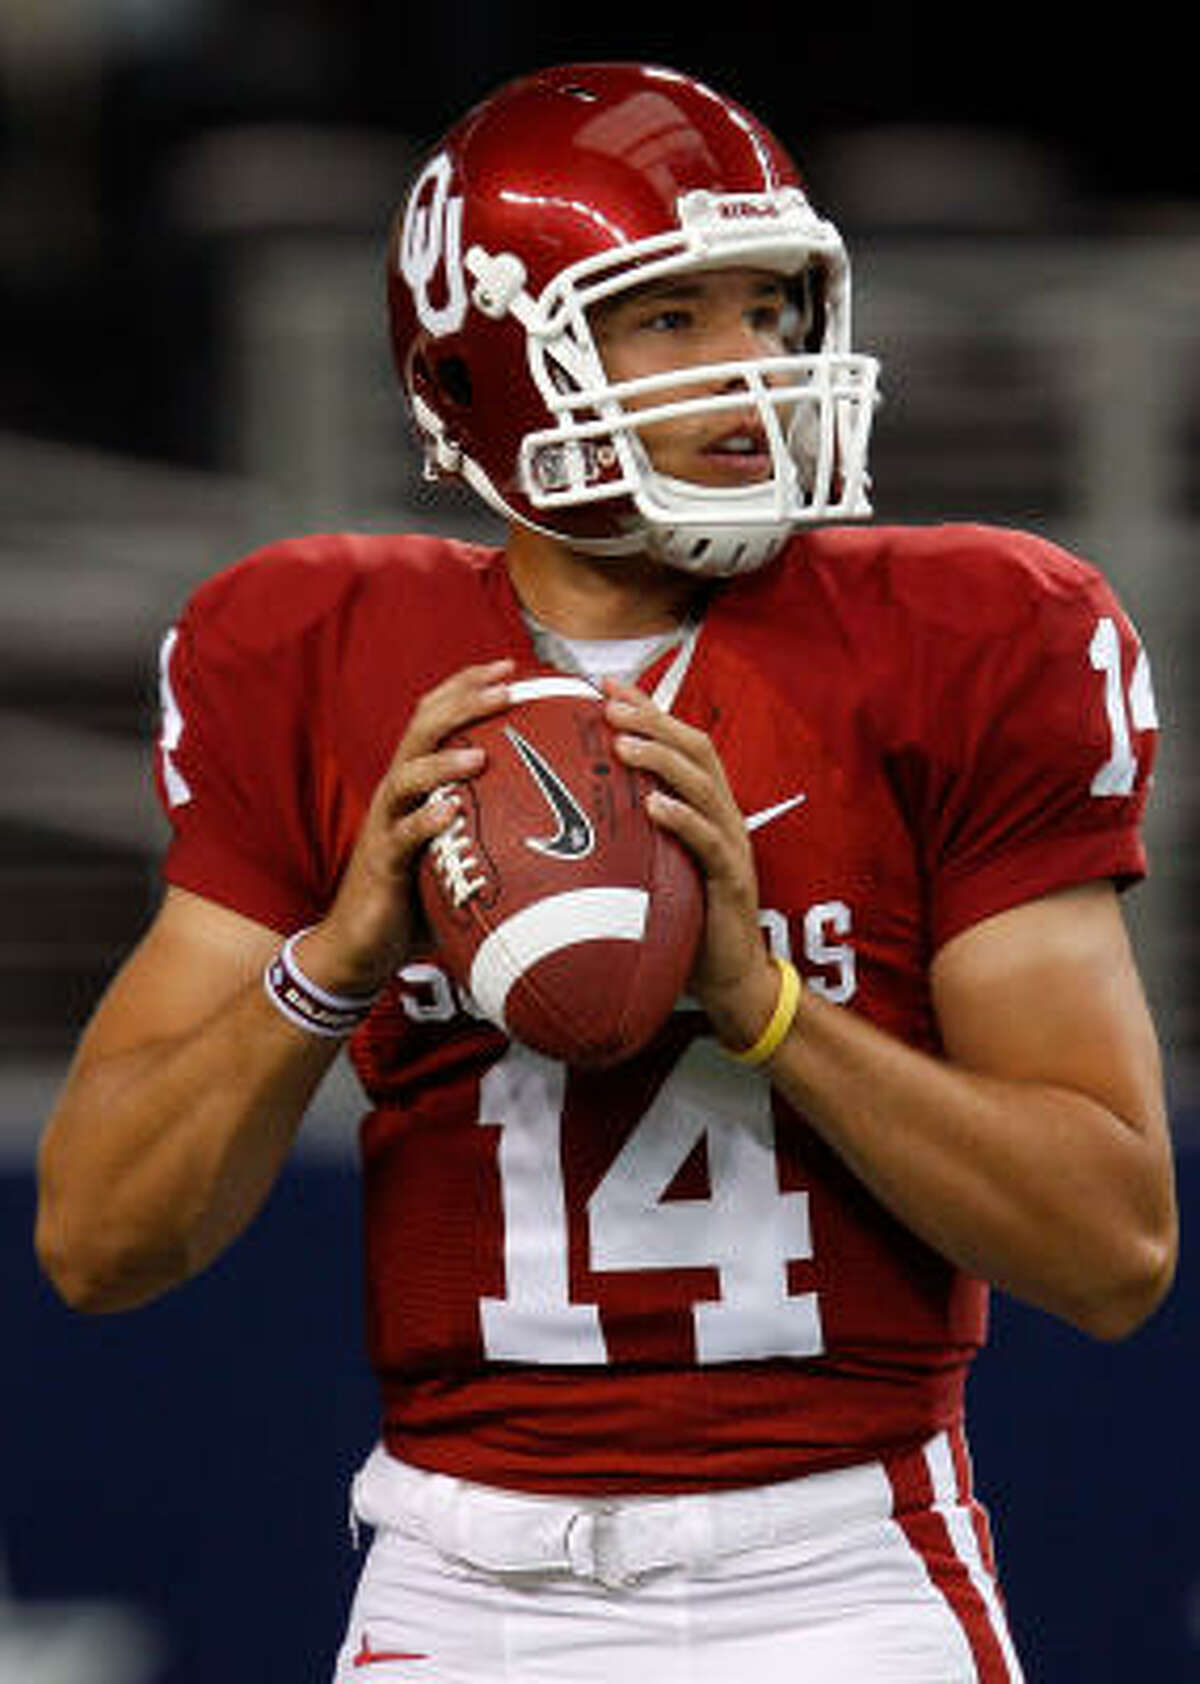 Sam Bradford finished his Oklahoma Sooners career with 8,403 passing yards, 88 passing touchdowns and winning the 2008 Heisman Trophy.